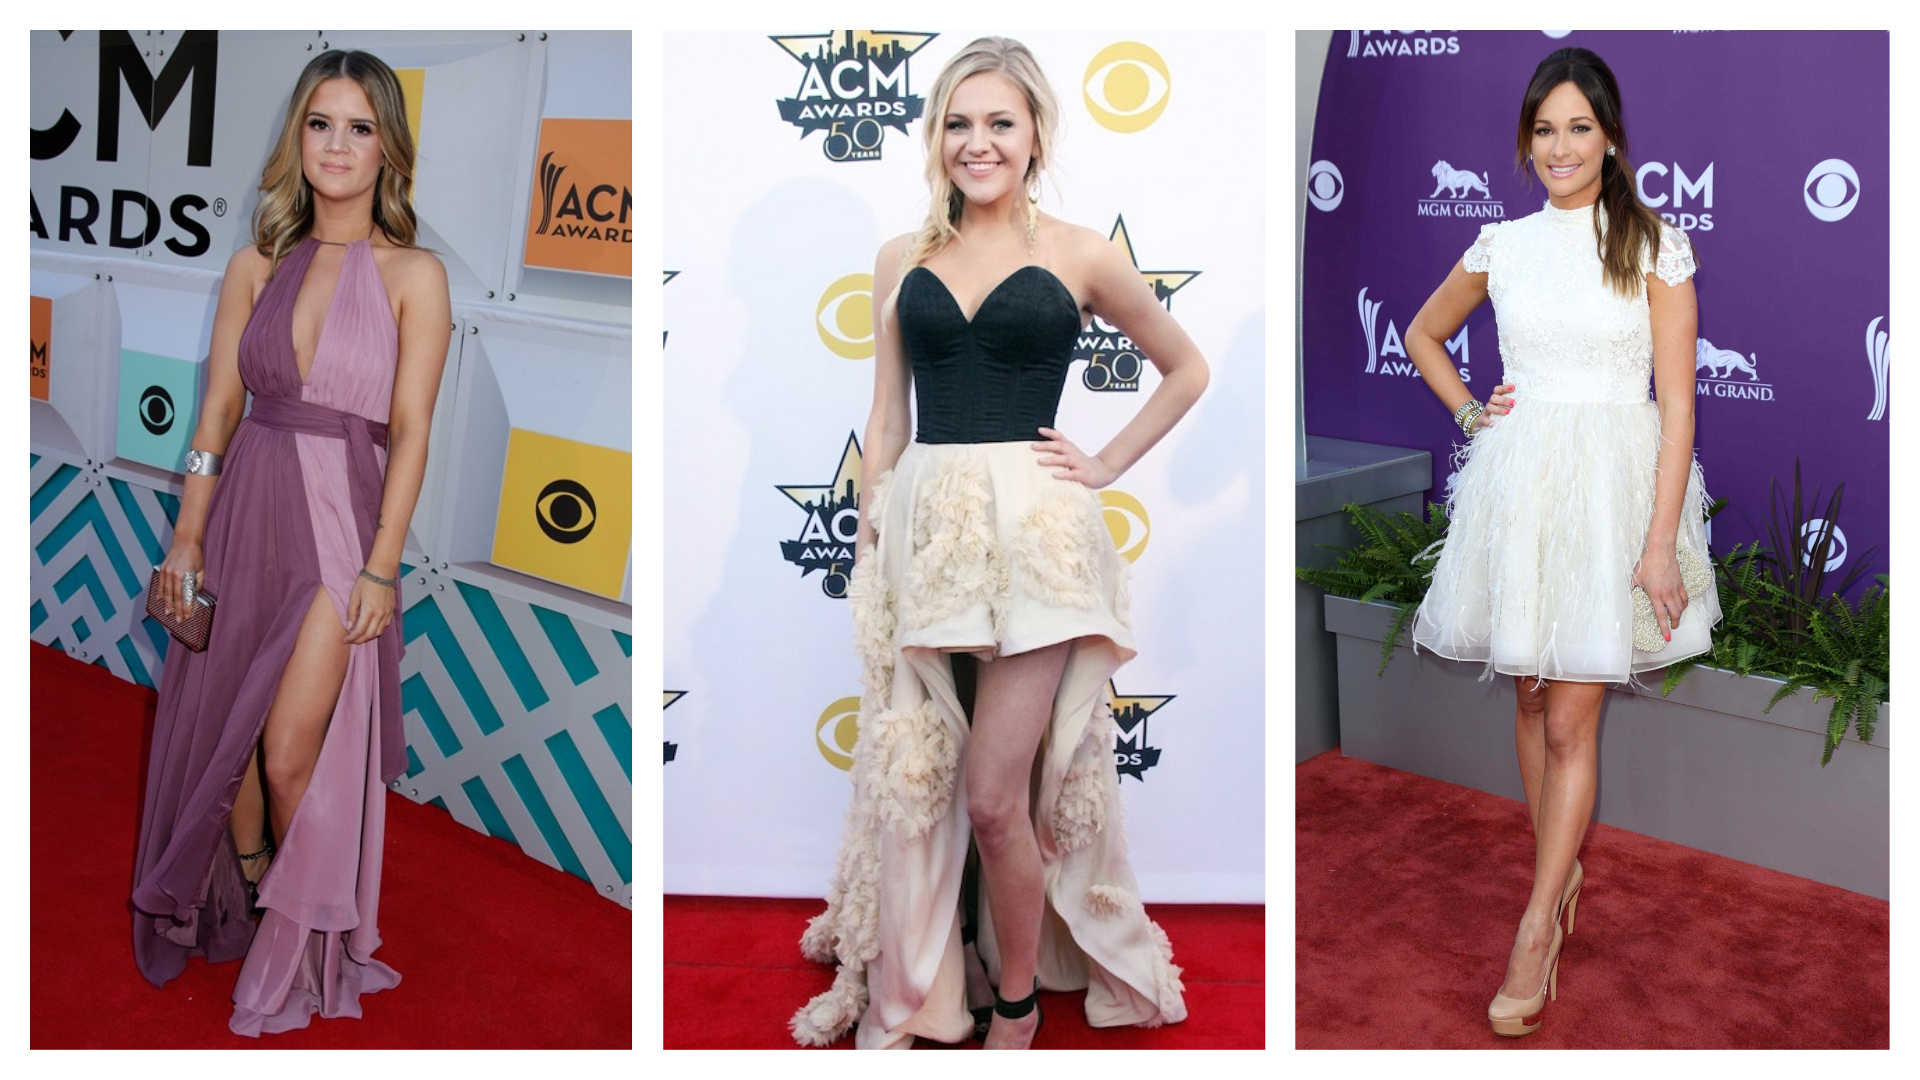 Look back on these first-ever ACM red carpet appearances by some of country's biggest names.